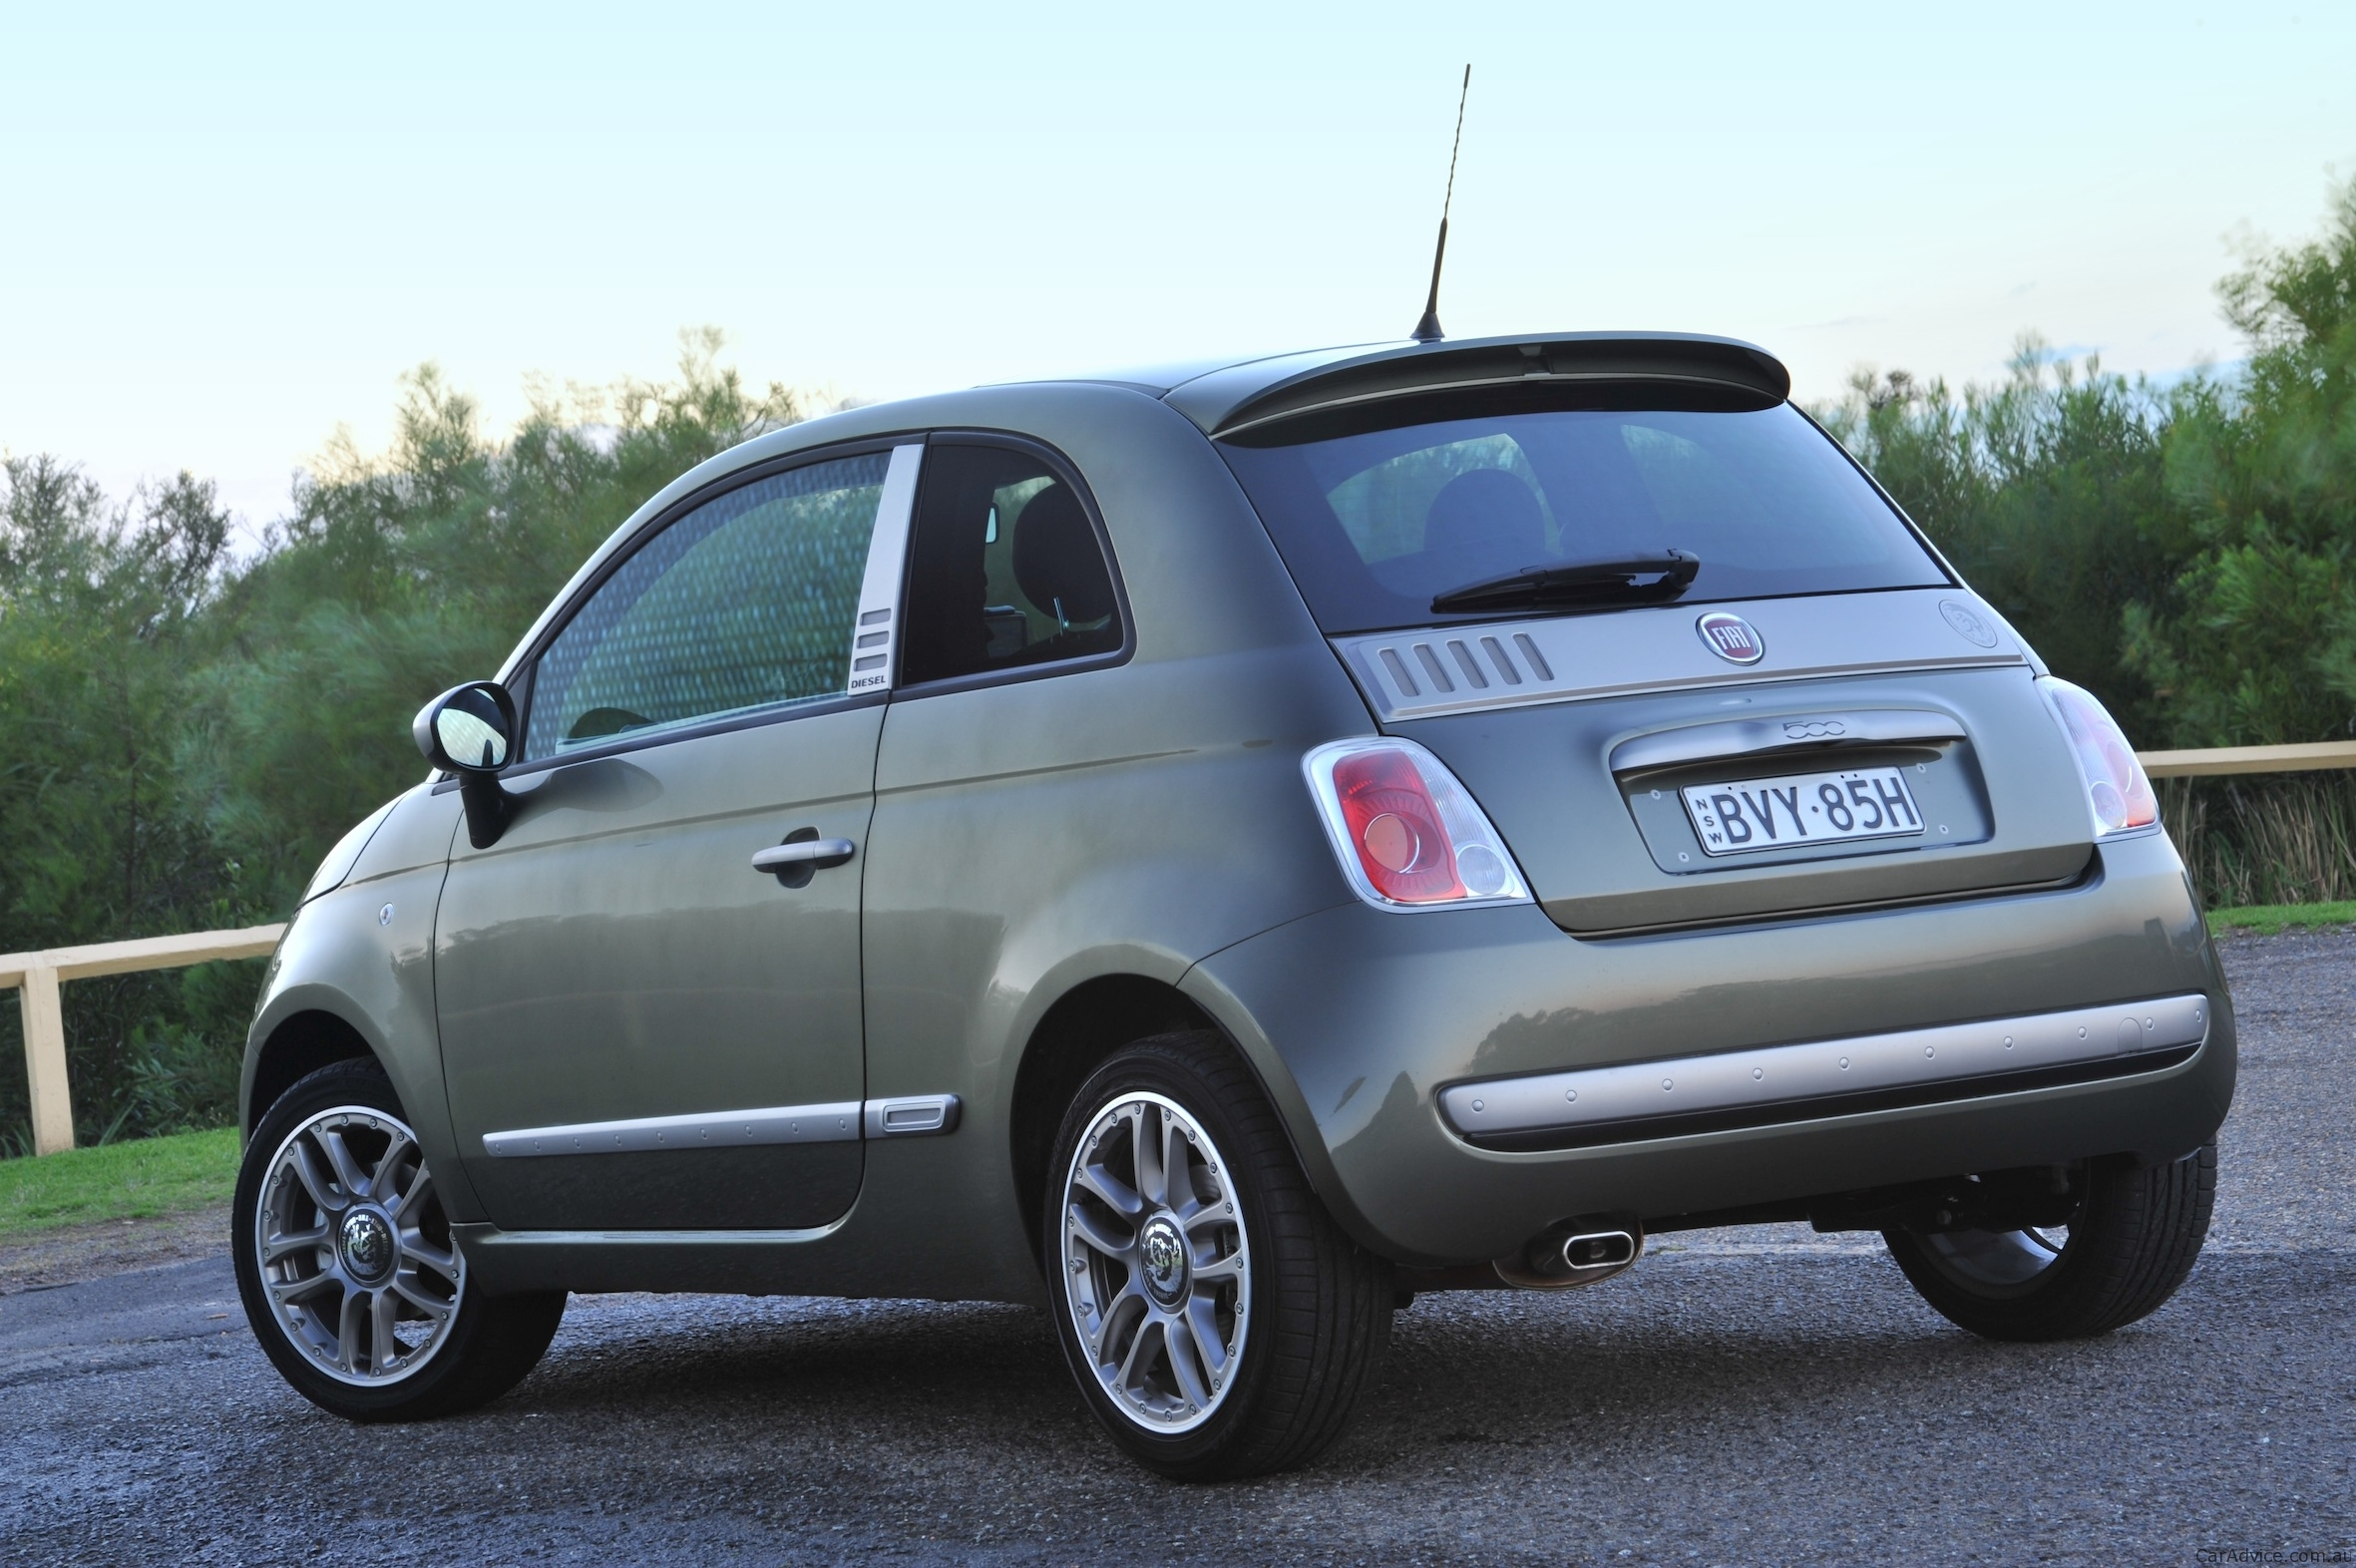 2011 Fiat 500 Diesel On Sale In Australia... But It's Not